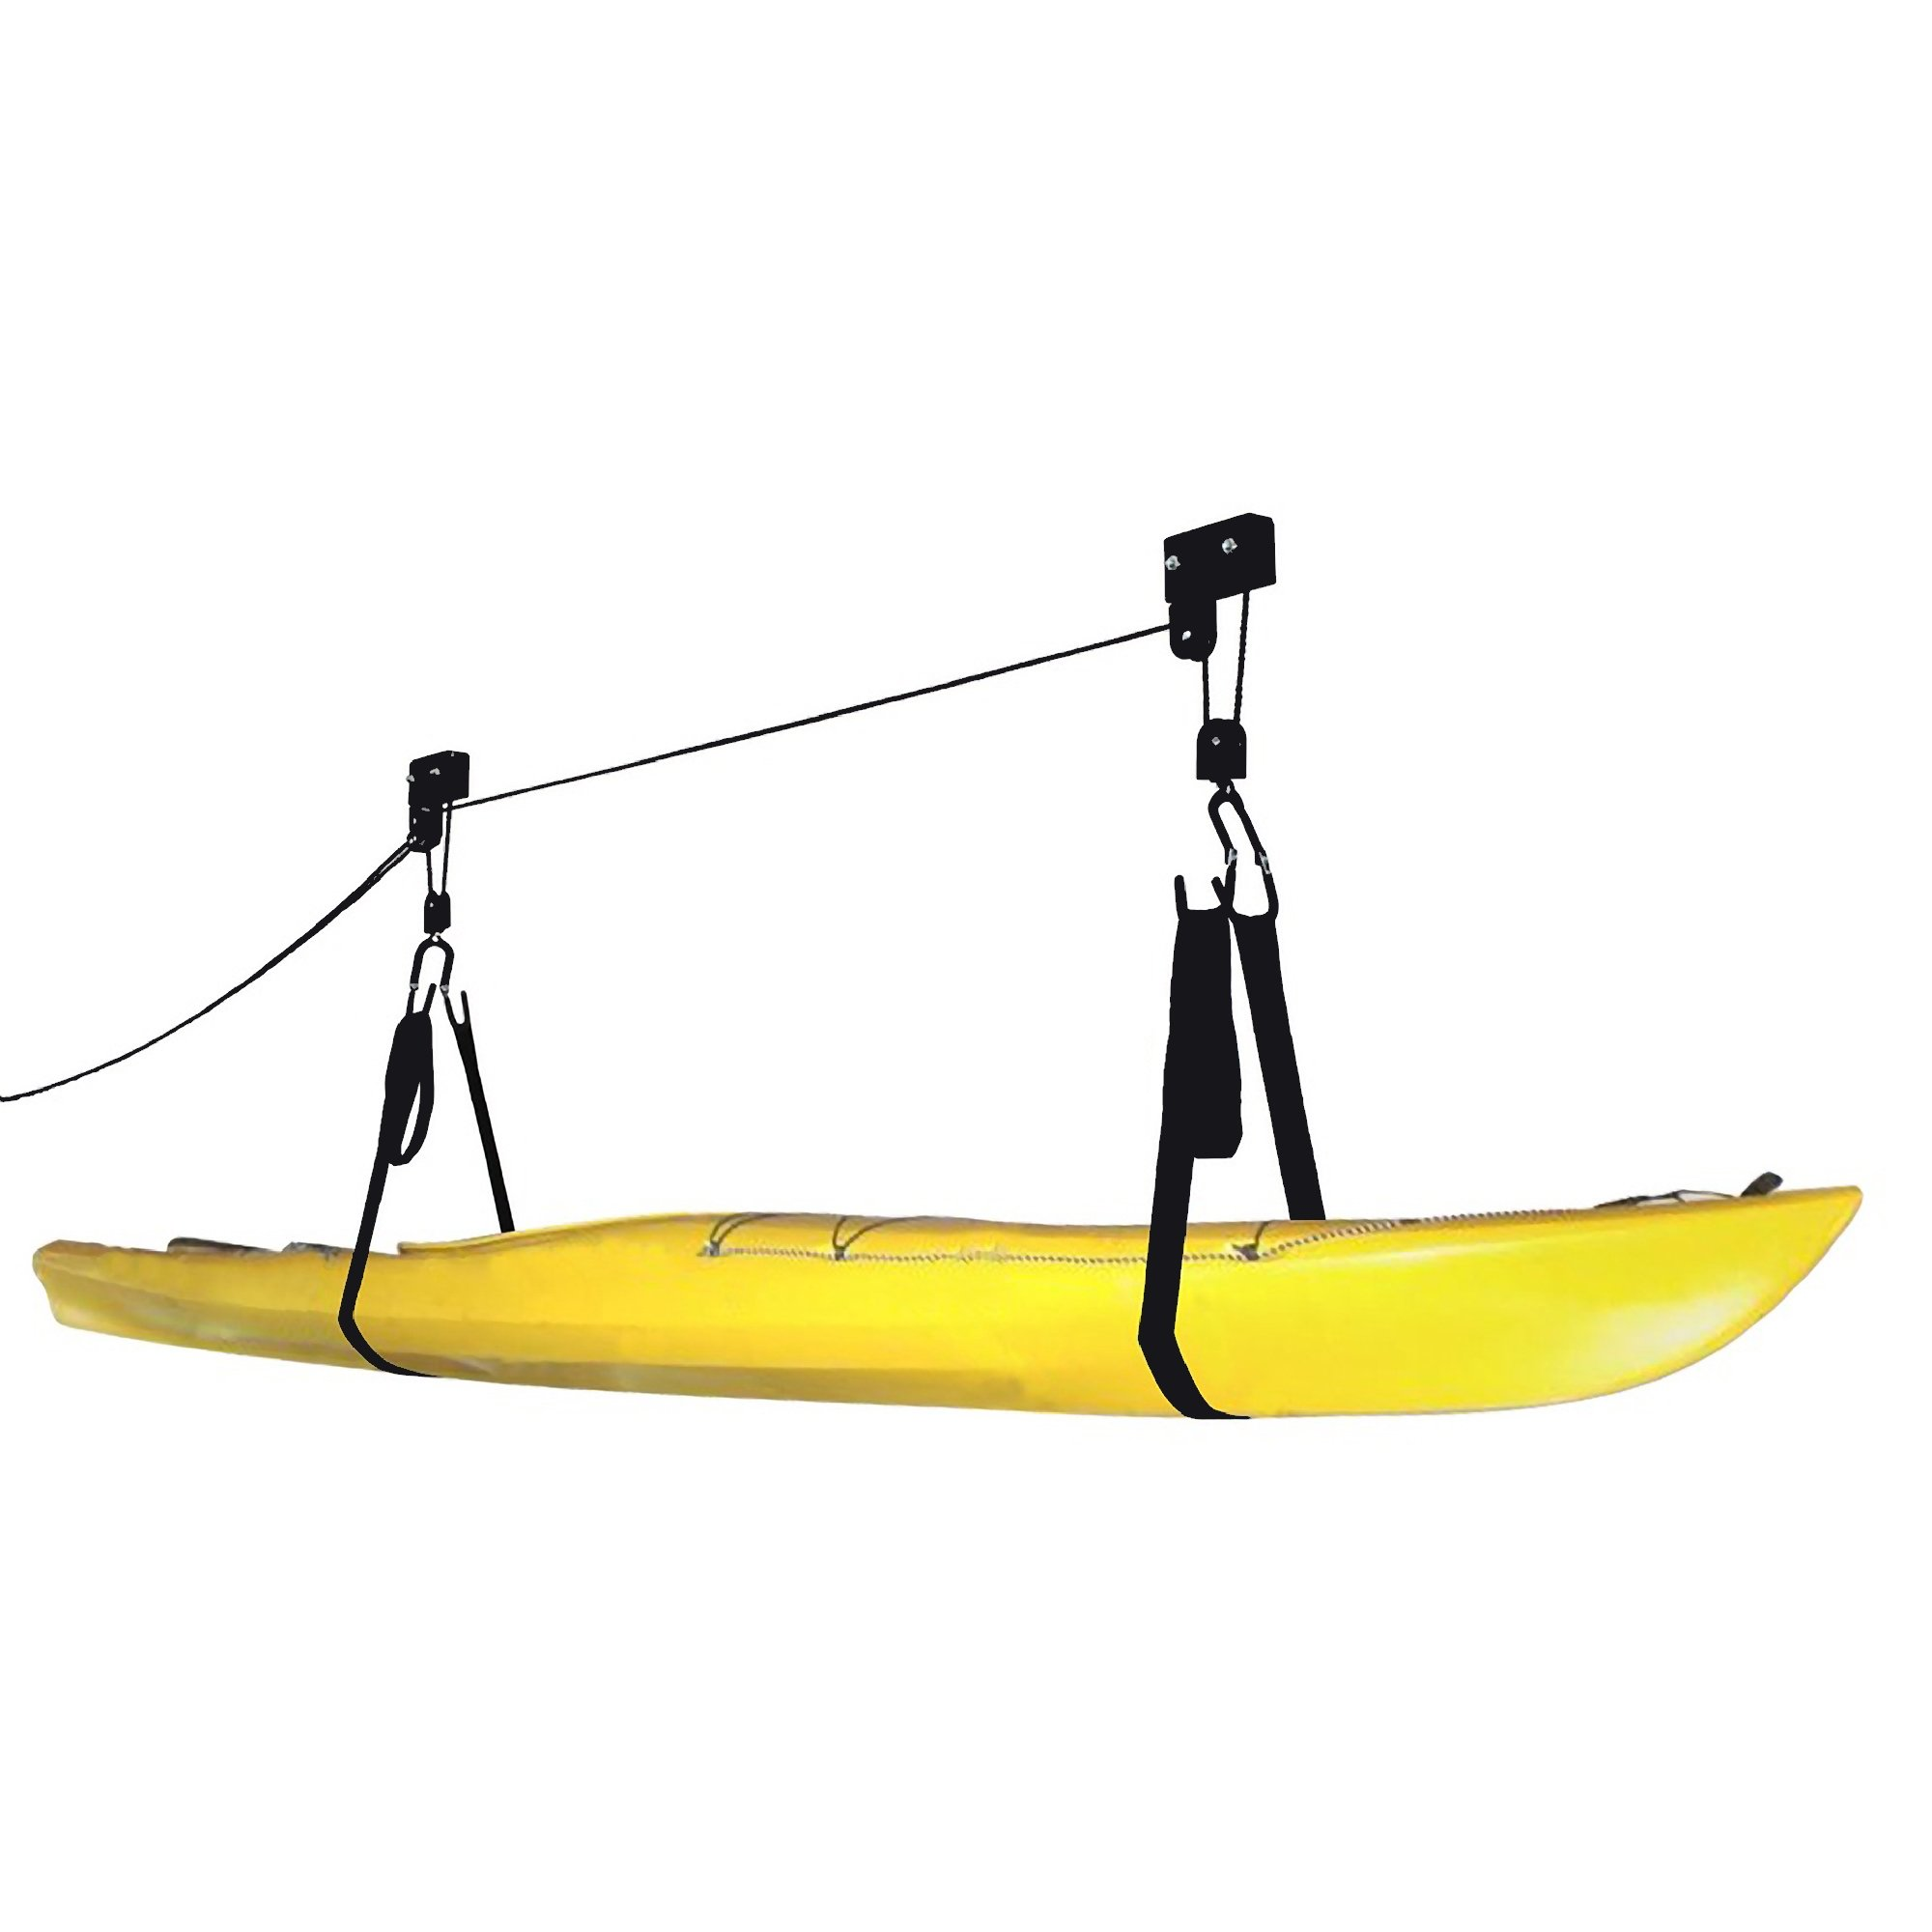 RAD Sportz Kayak Hoist Quality Garage Storage Canoe Lift with 125 lb Capacity Even Works as Ladder Lift Premium Quality by RAD Sportz (Image #2)